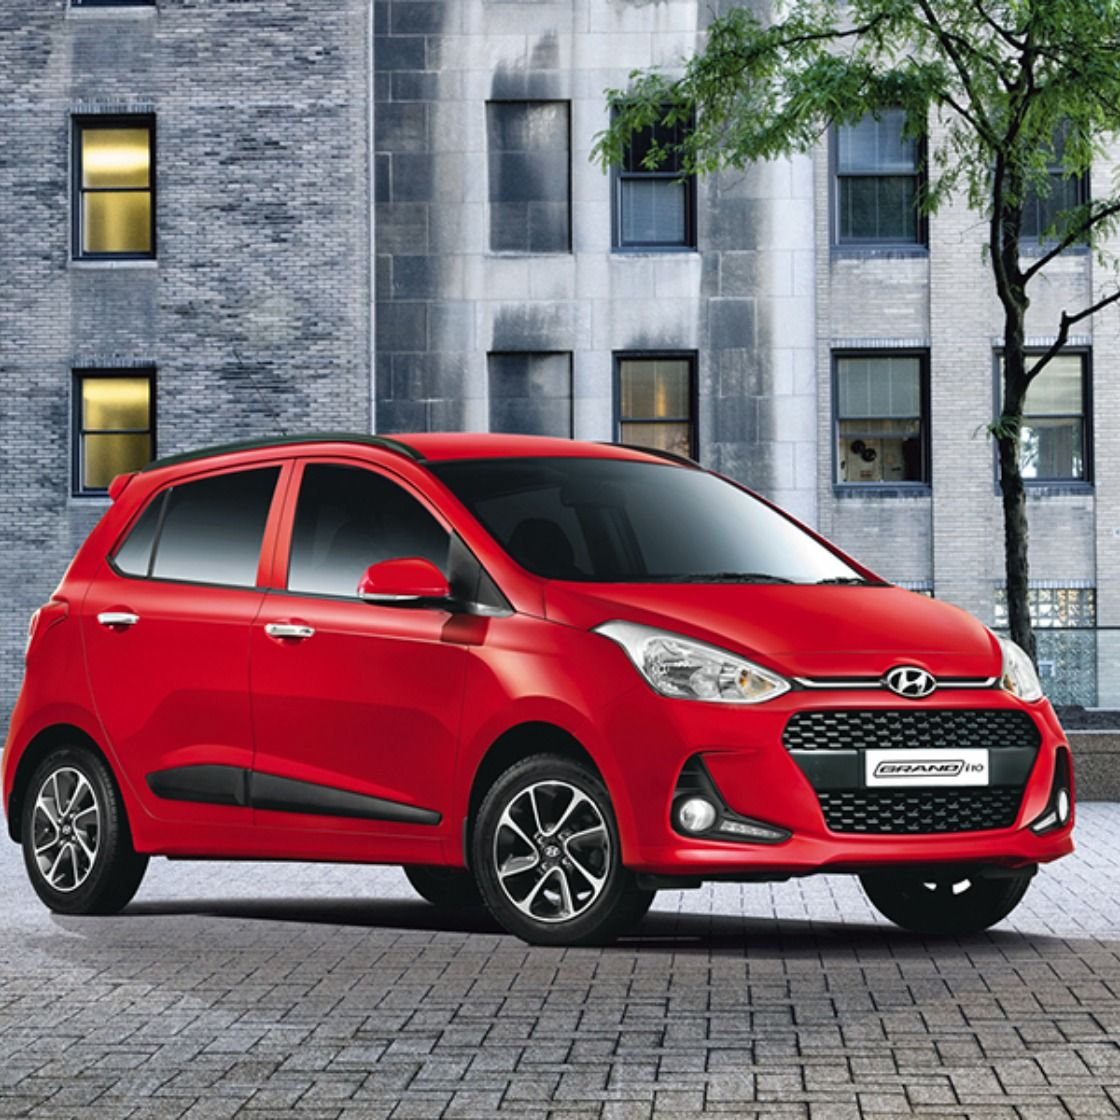 Generous Dimension Of Grand I10 Boasts Its Dynamic Comfort The